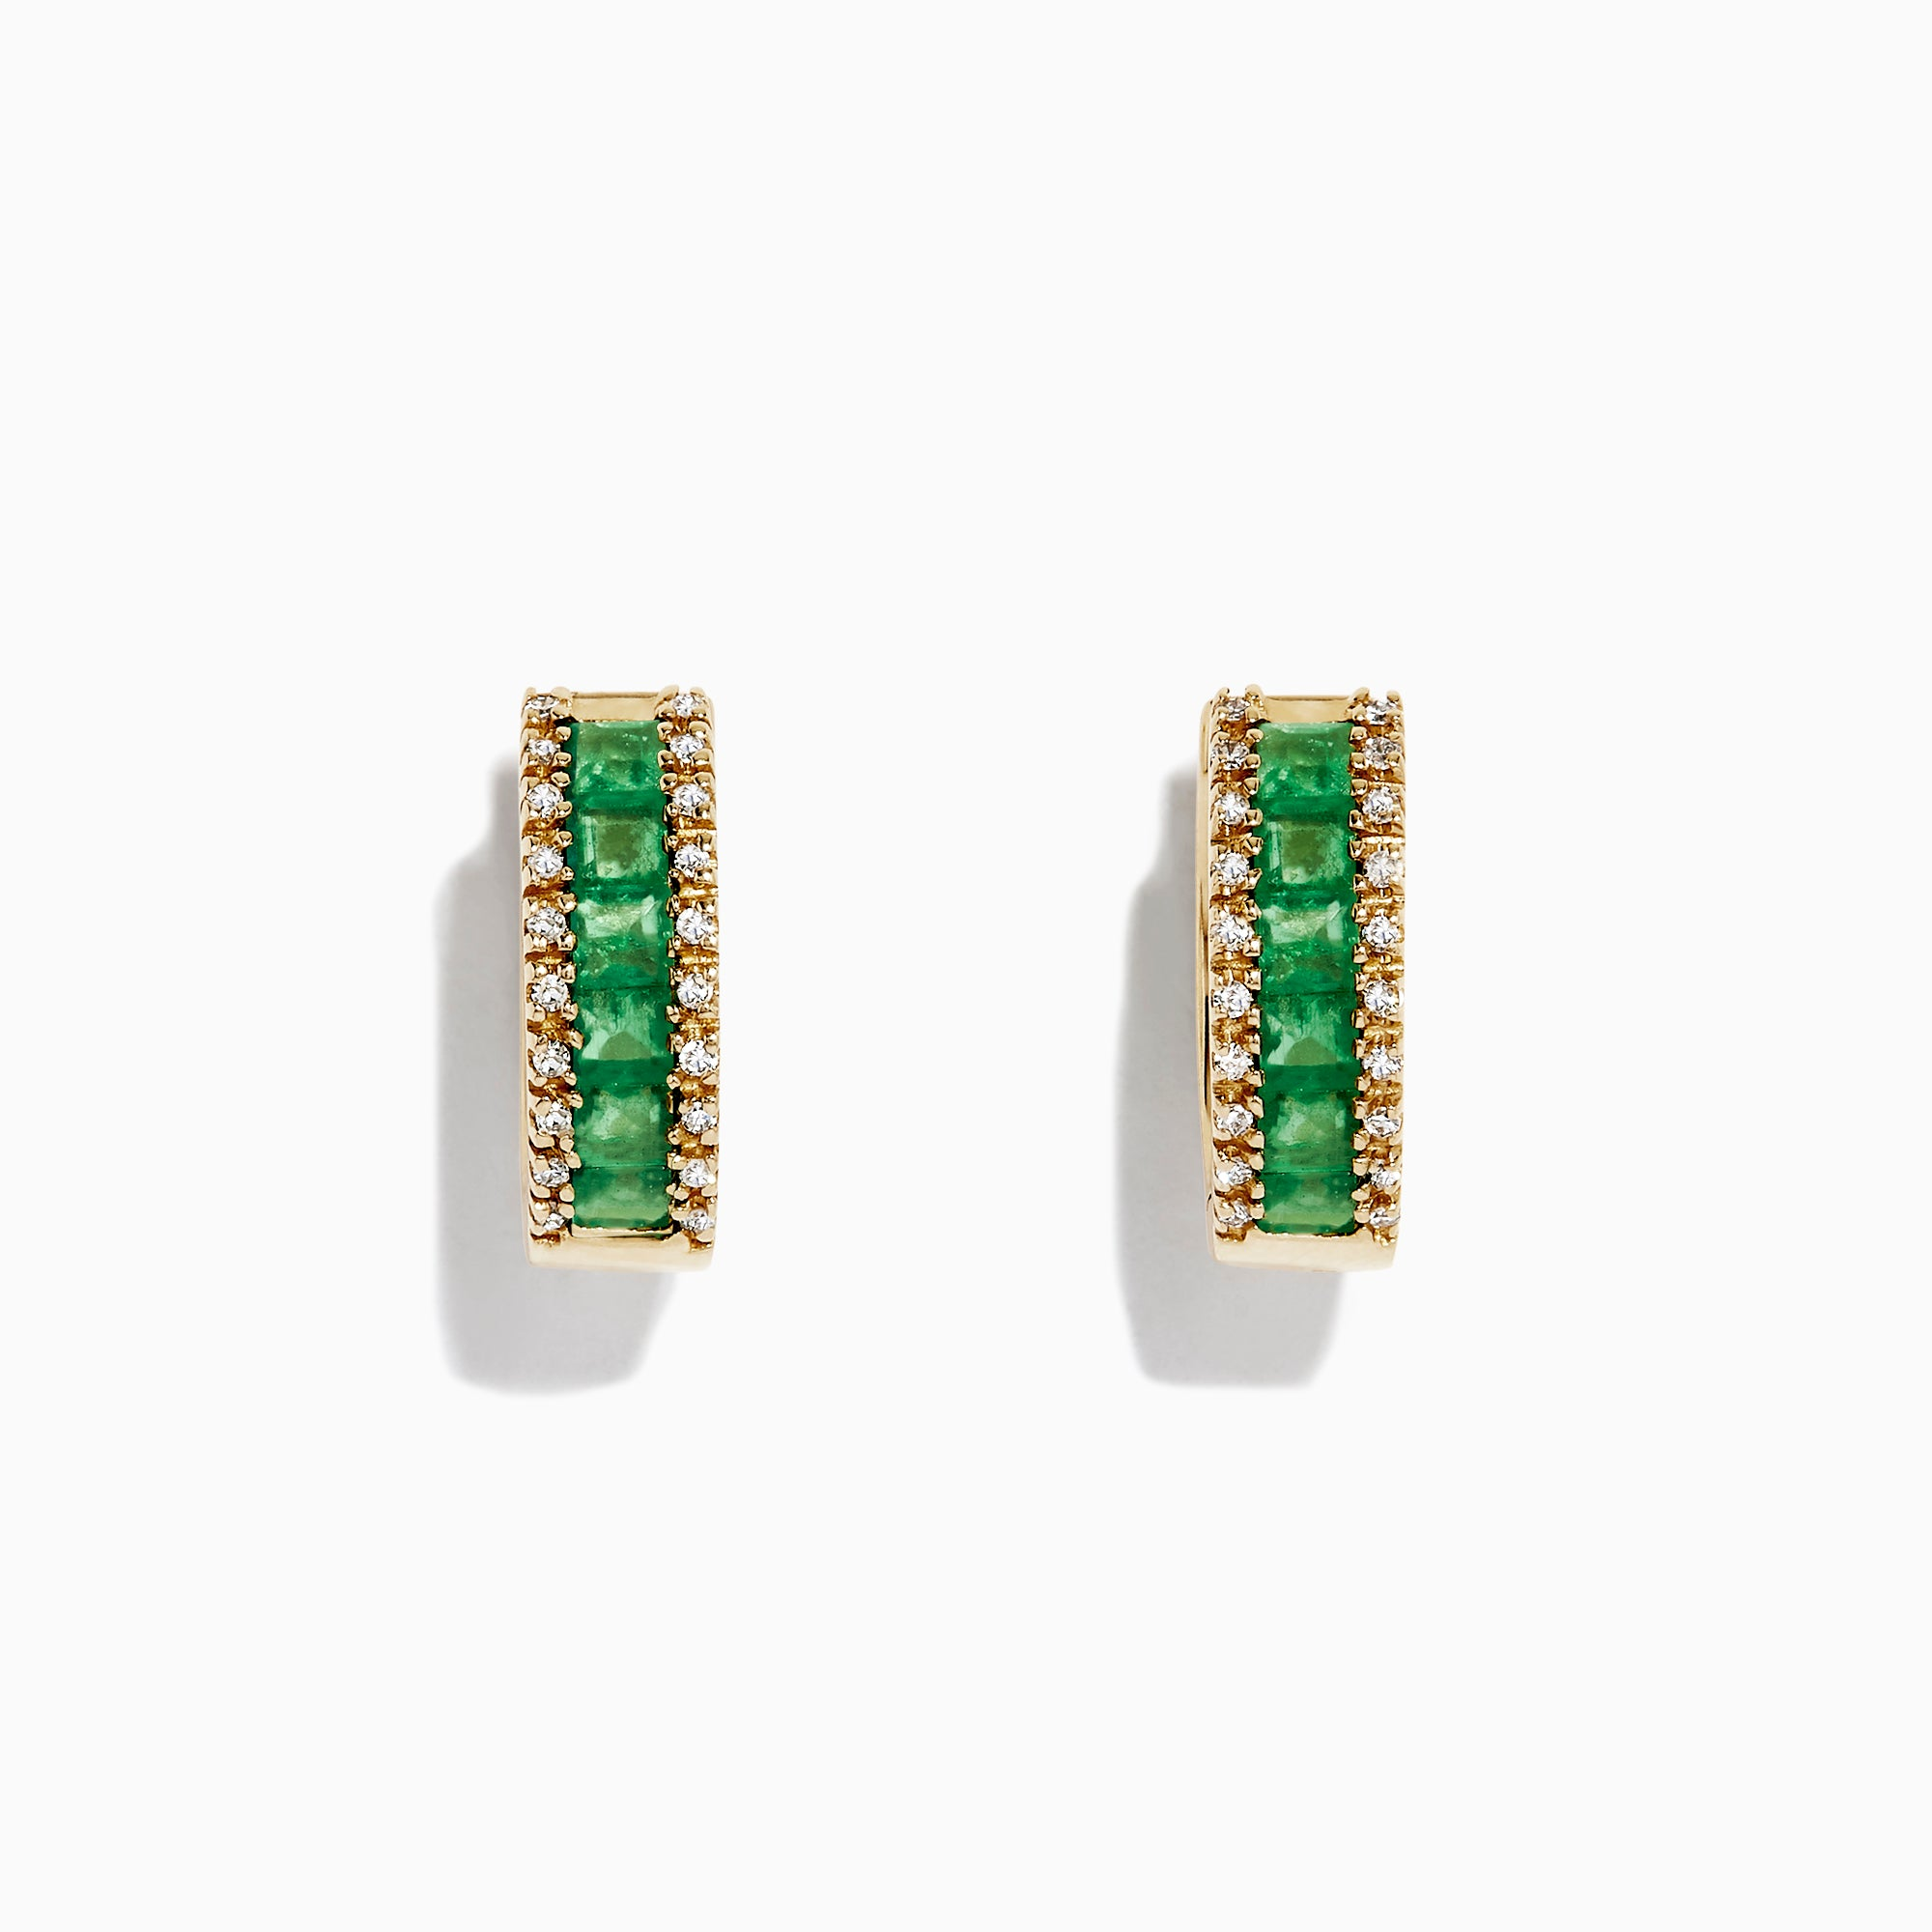 Effy Brasilica 14K Yellow Gold Emerald and Diamond Earrings, 1.53 TCW